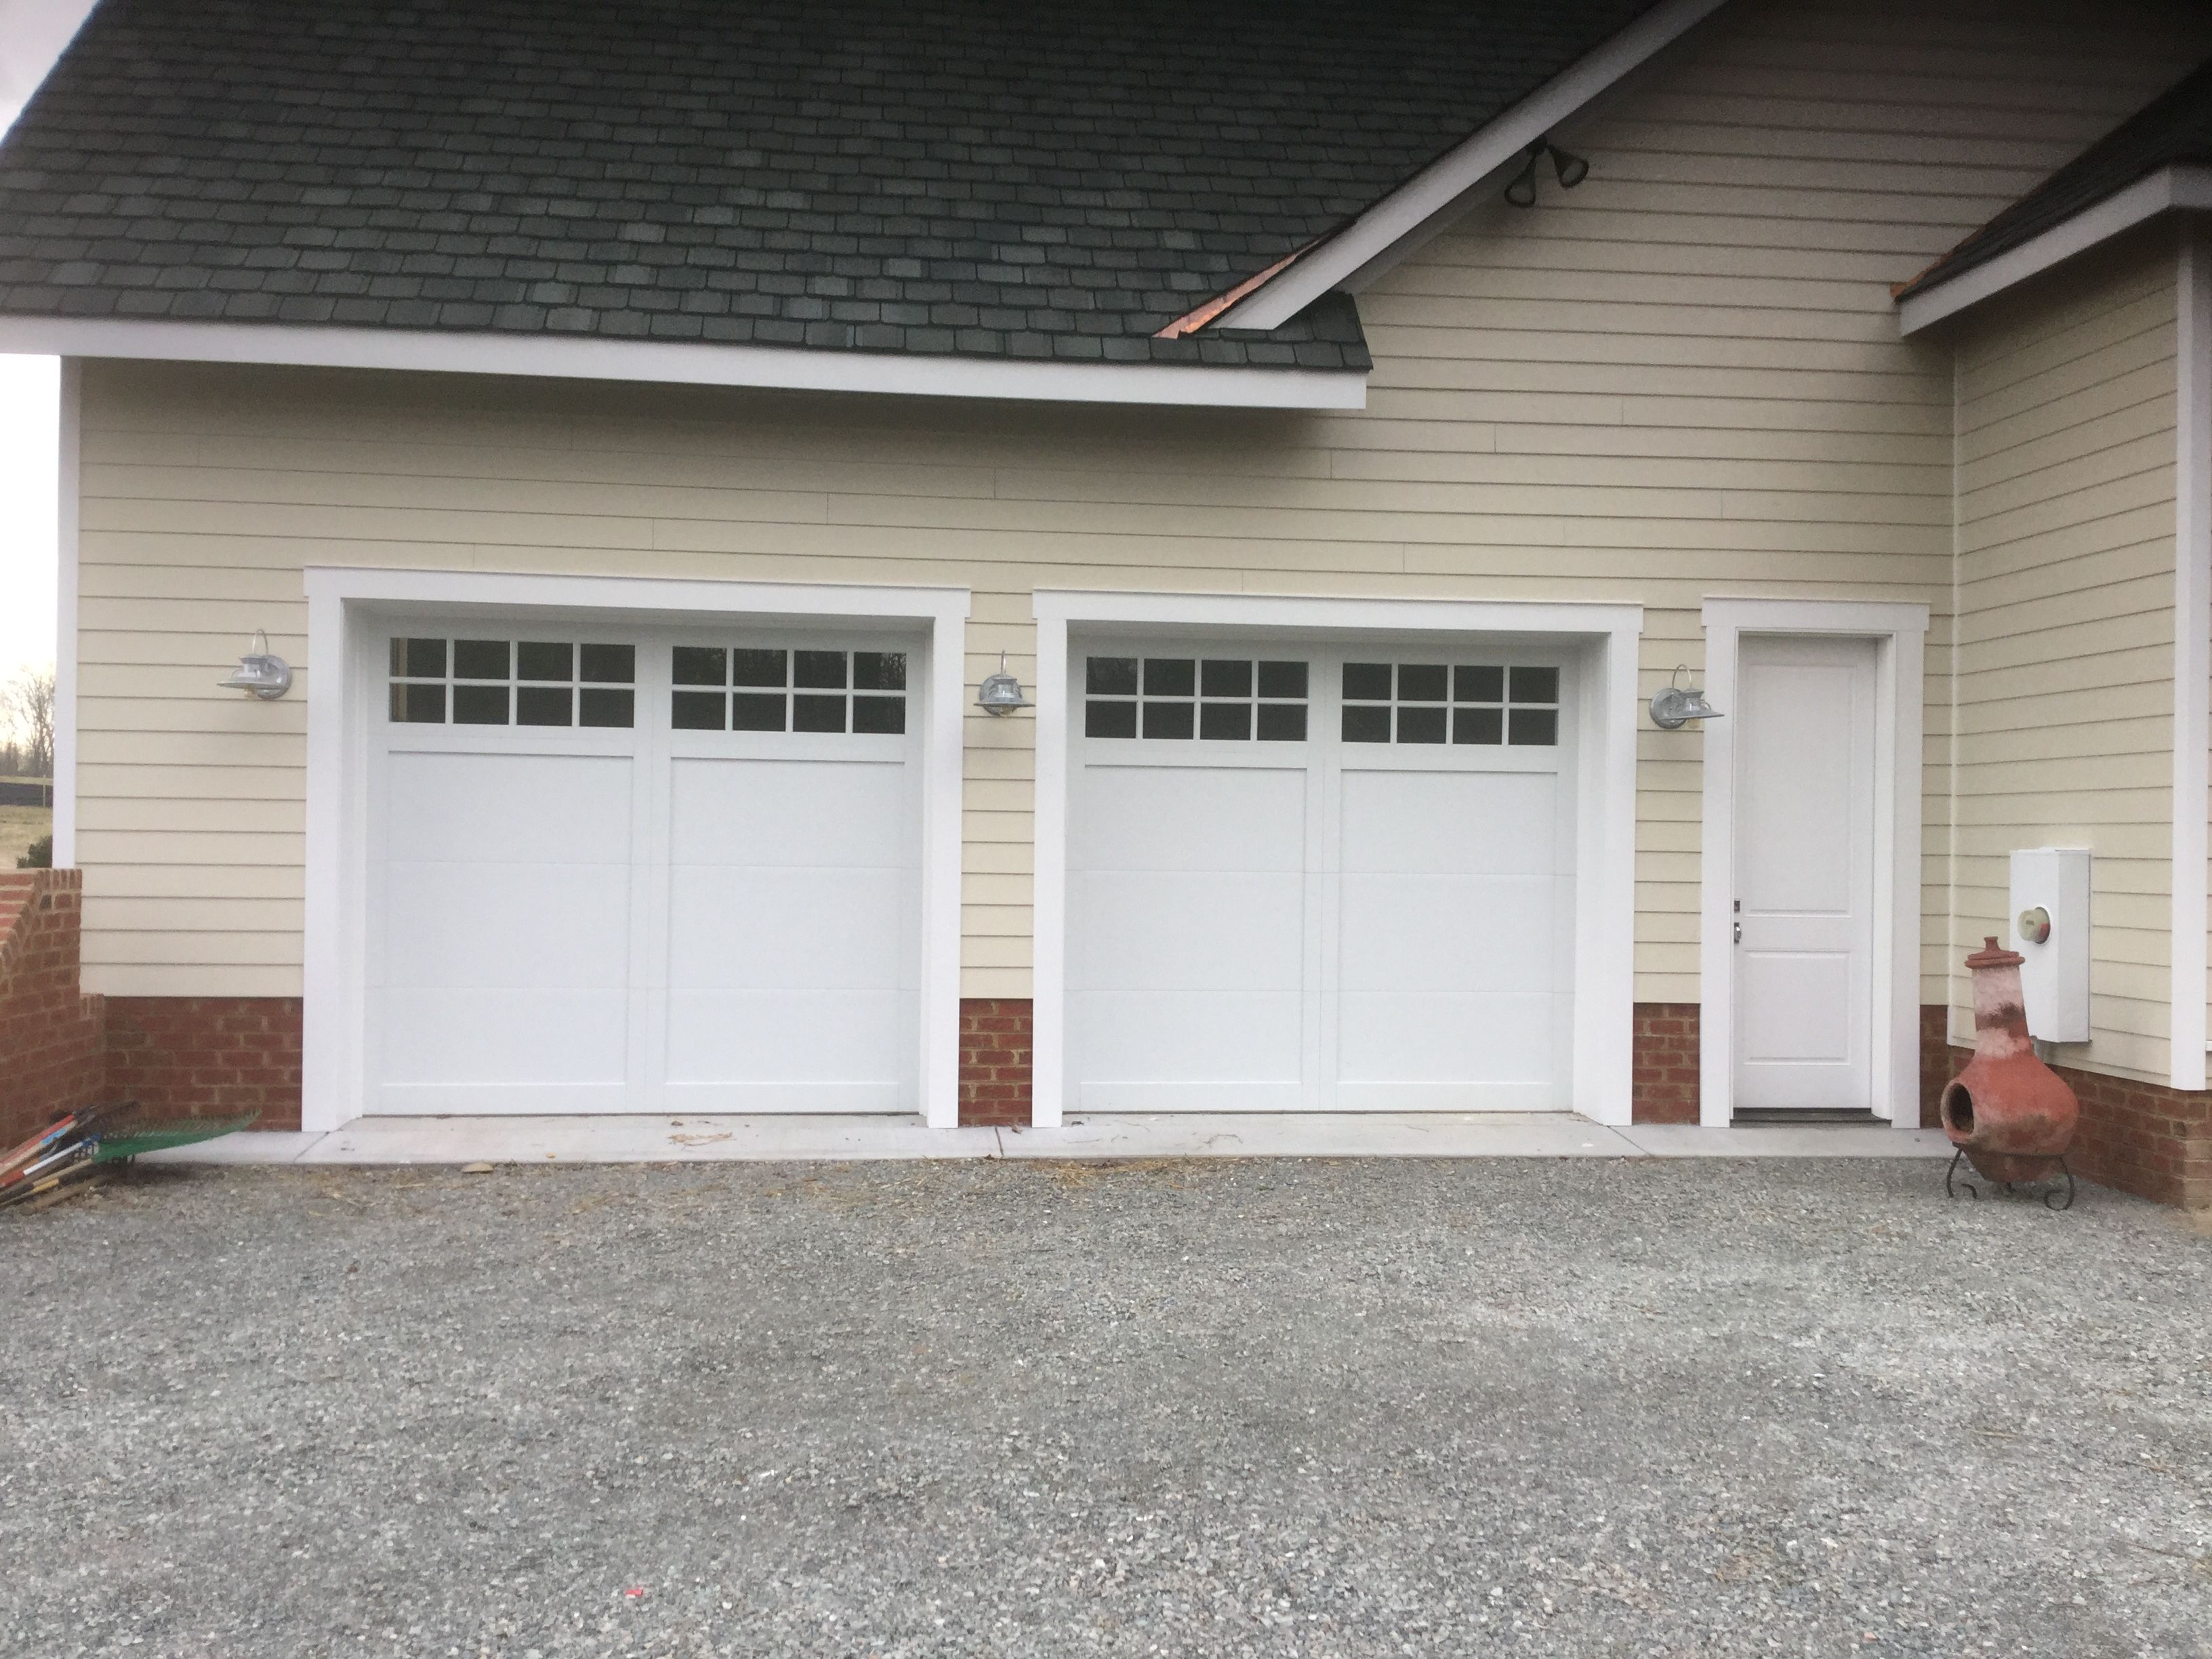 Two 9x8 Model 5331 Double Steel Insulated Garage Doors With Fiber Poly Accent Batten Overlay And Top Stockton Garage Door Insulation Glass Design Garage Doors